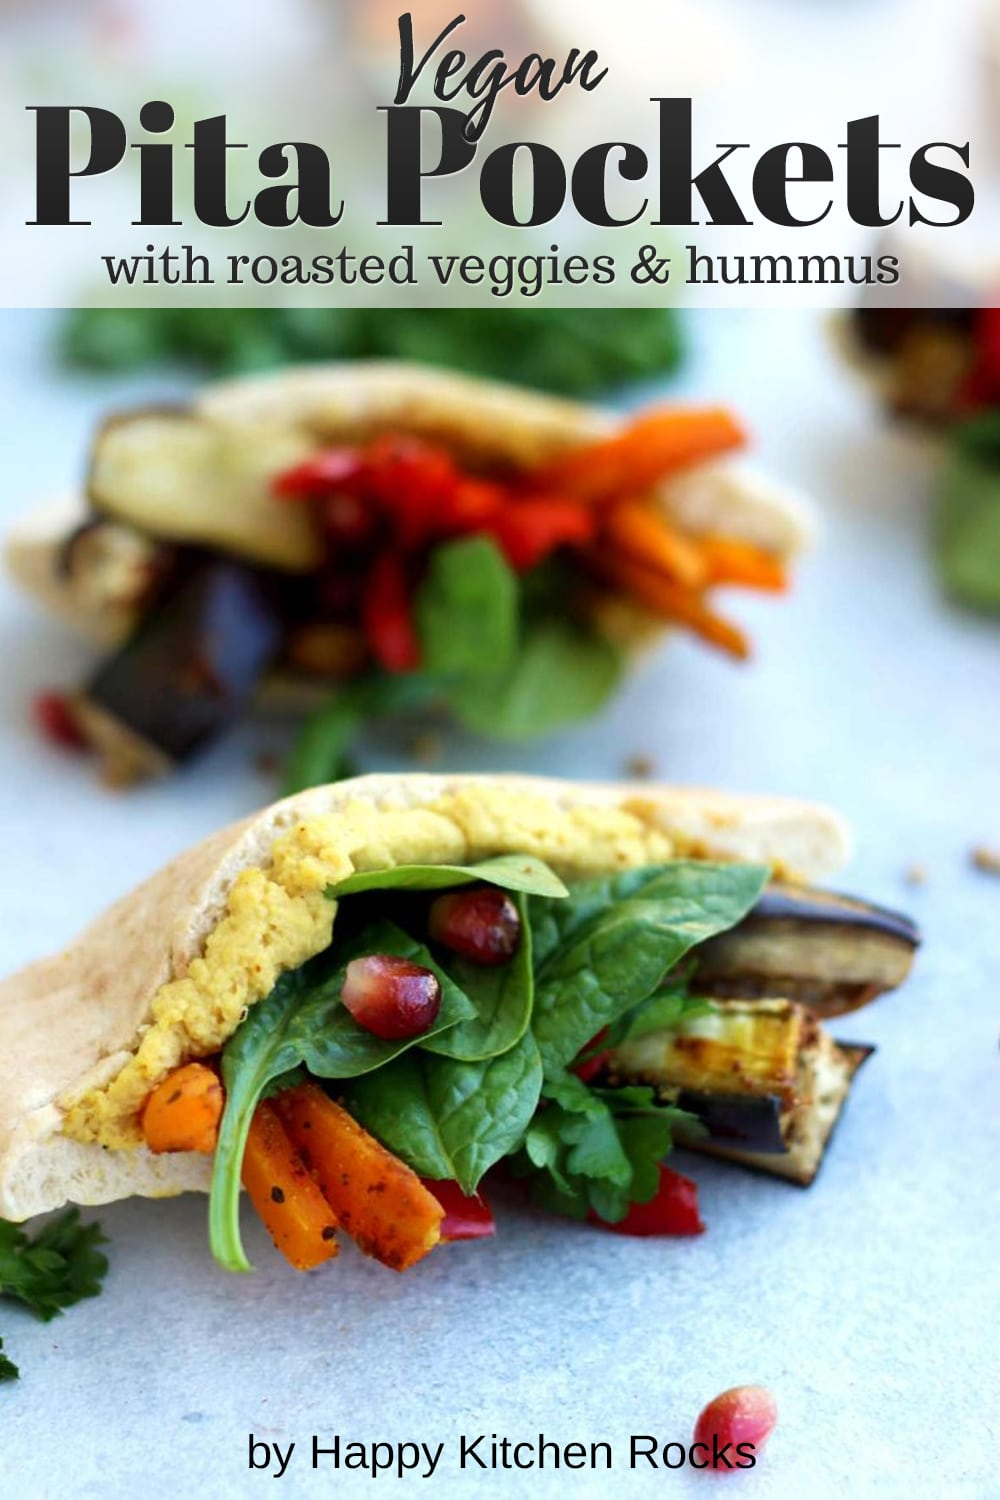 Pita Pockets with Roasted Veggies and Hummus Collage with Text Overlay